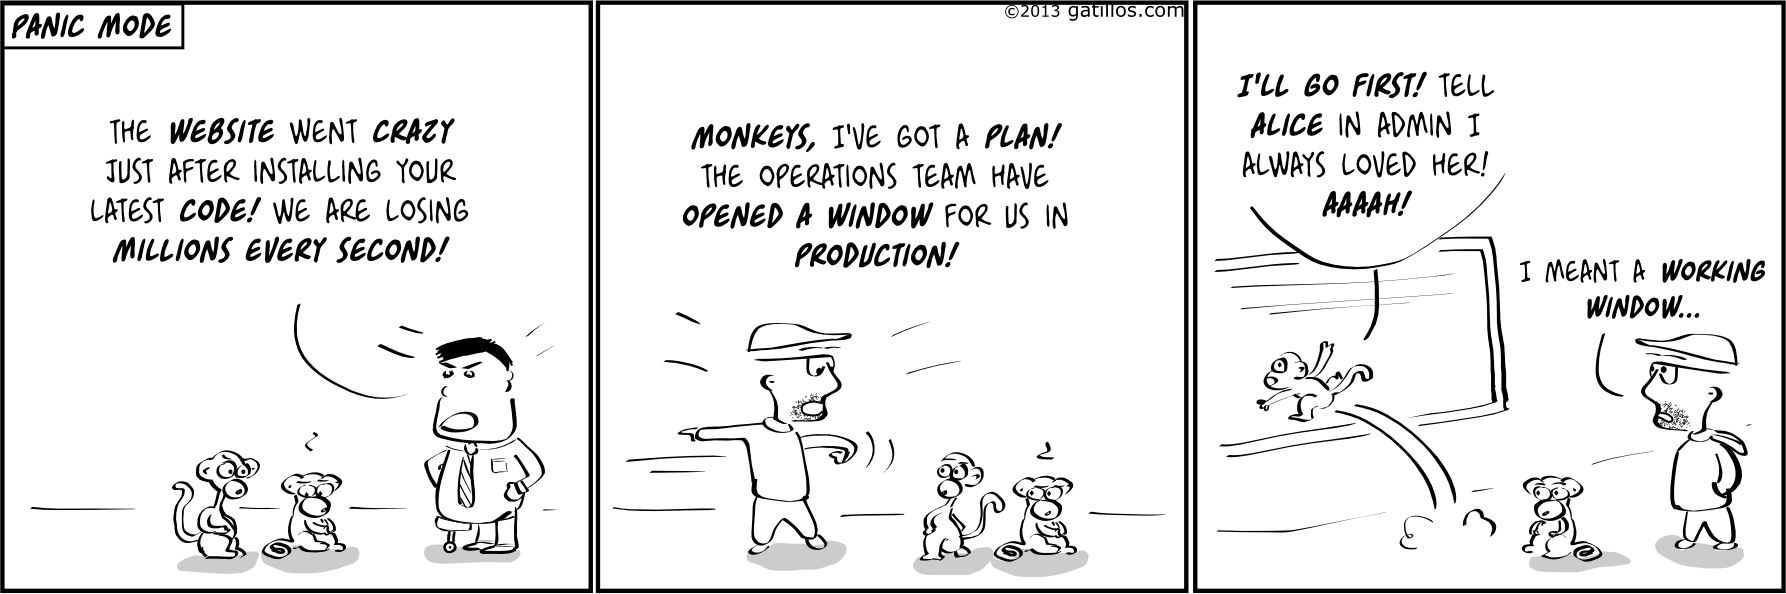 Paul the innovator (67): Panic mode